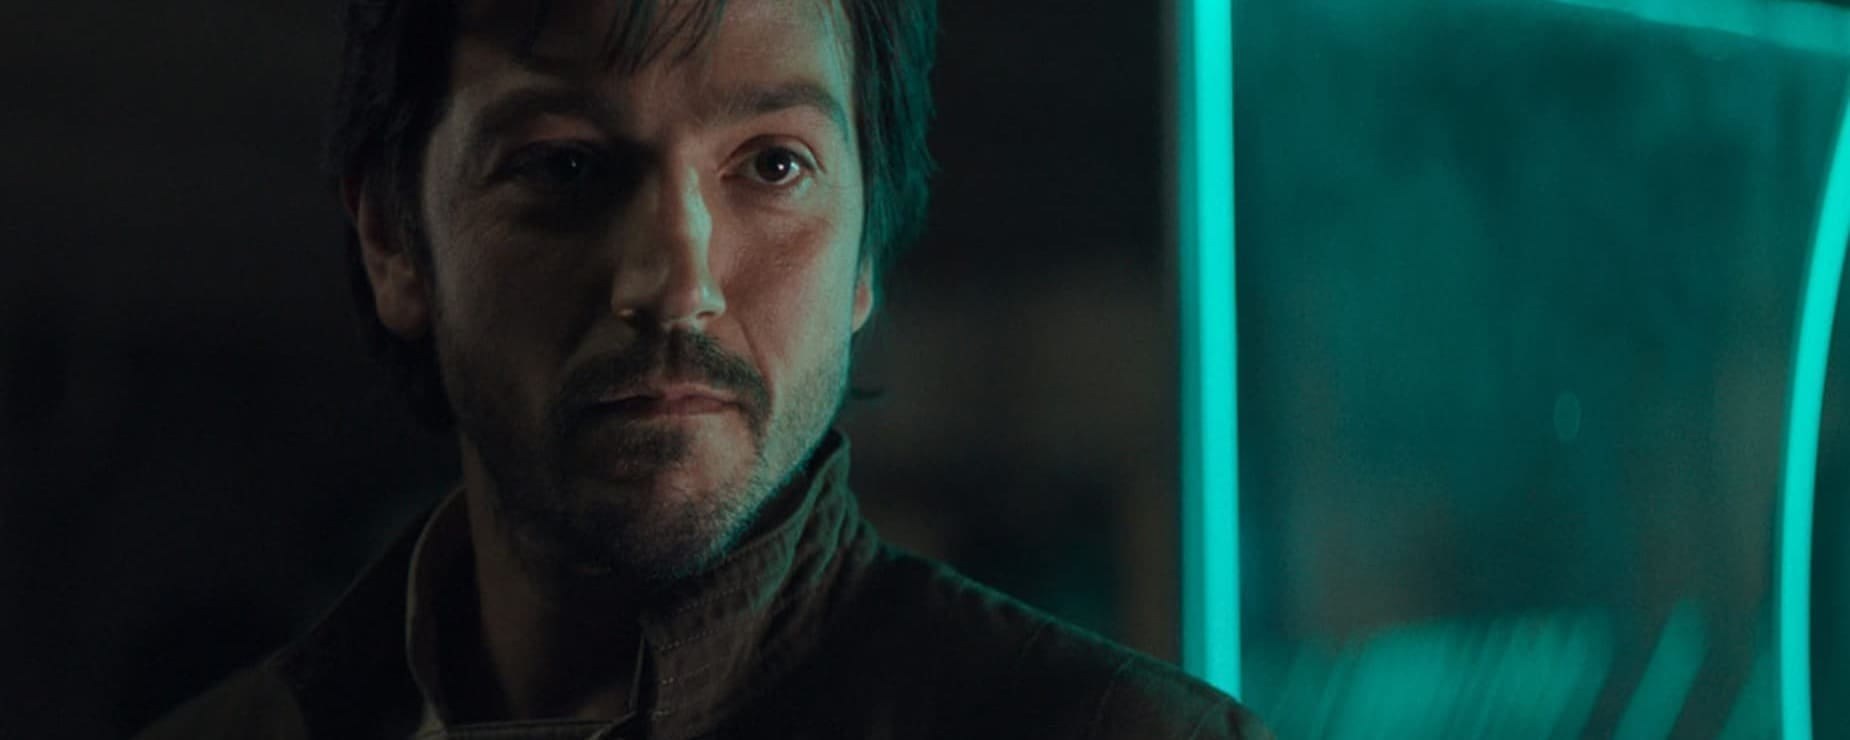 Diego Luna playing Cassian Andor from Rogue One